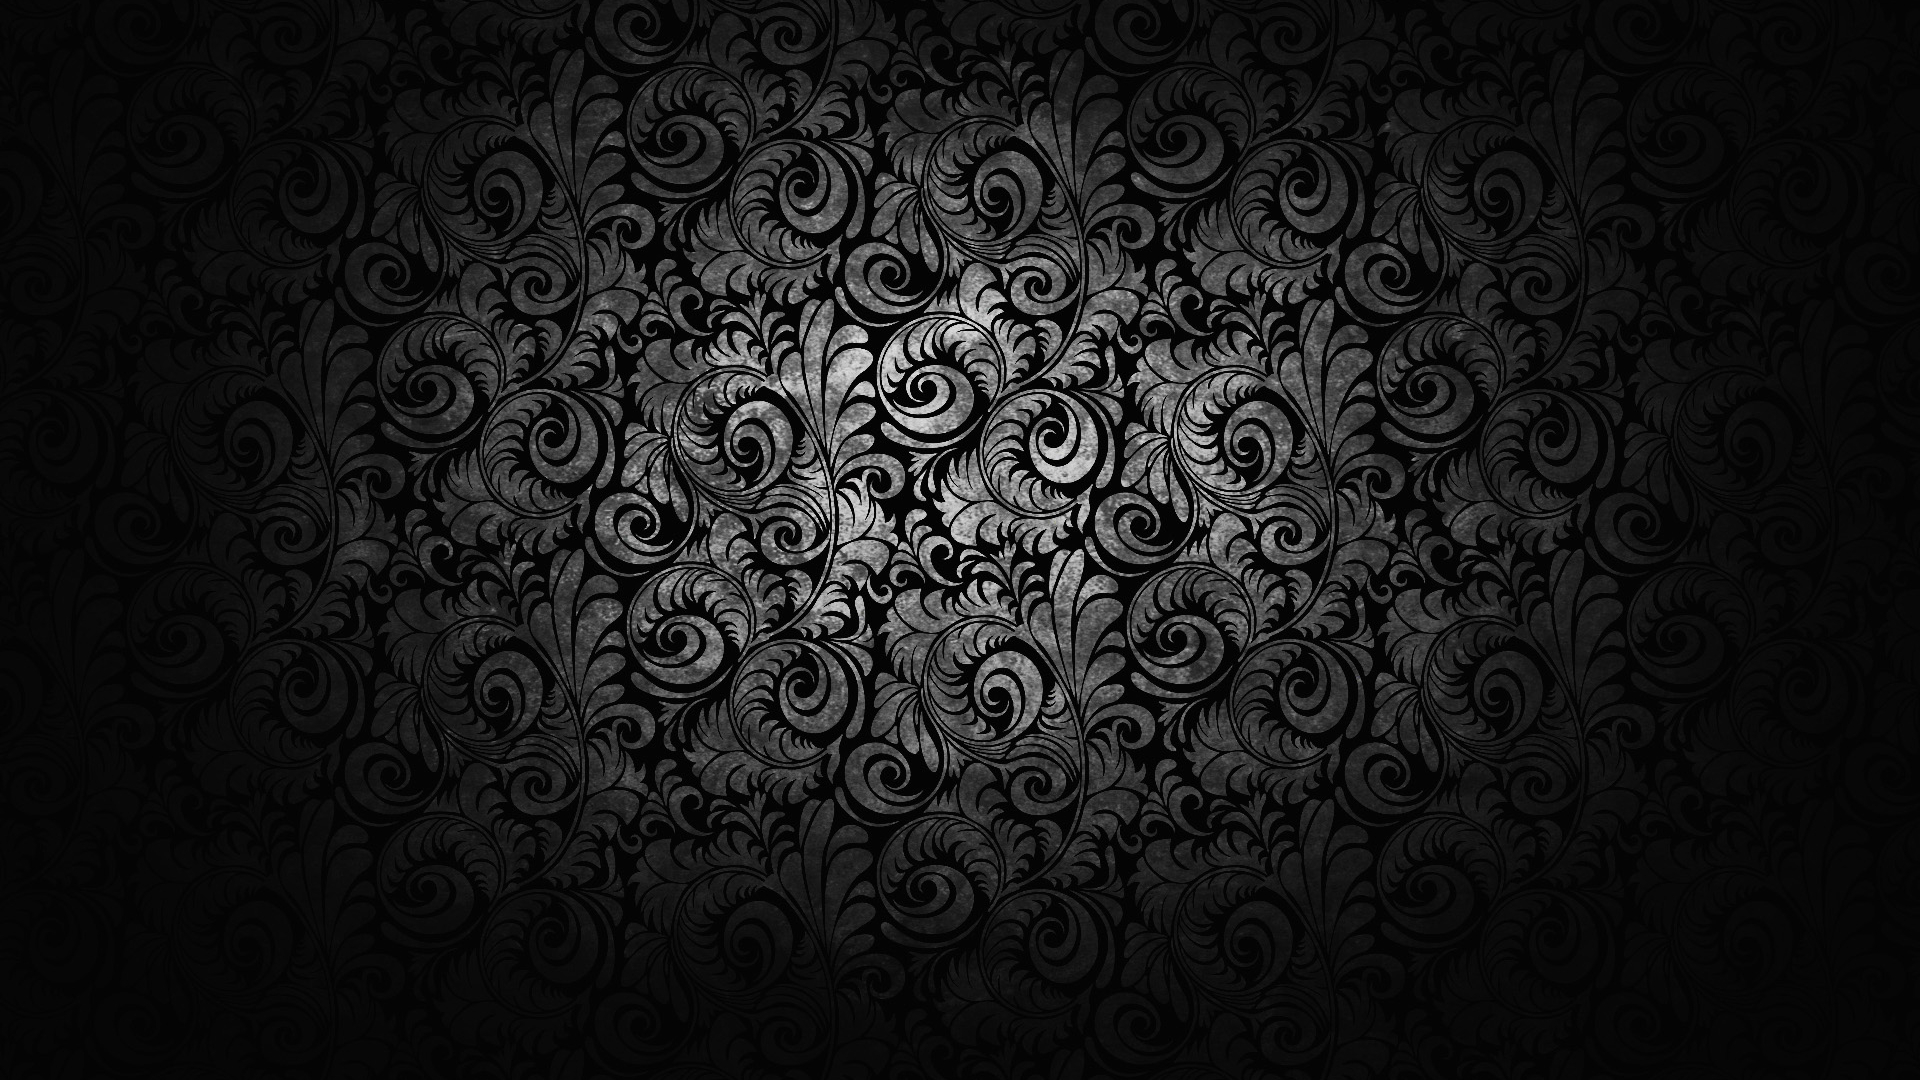 Free Download Black Floral Hd Wallpapers Backgrounds 1920x1200